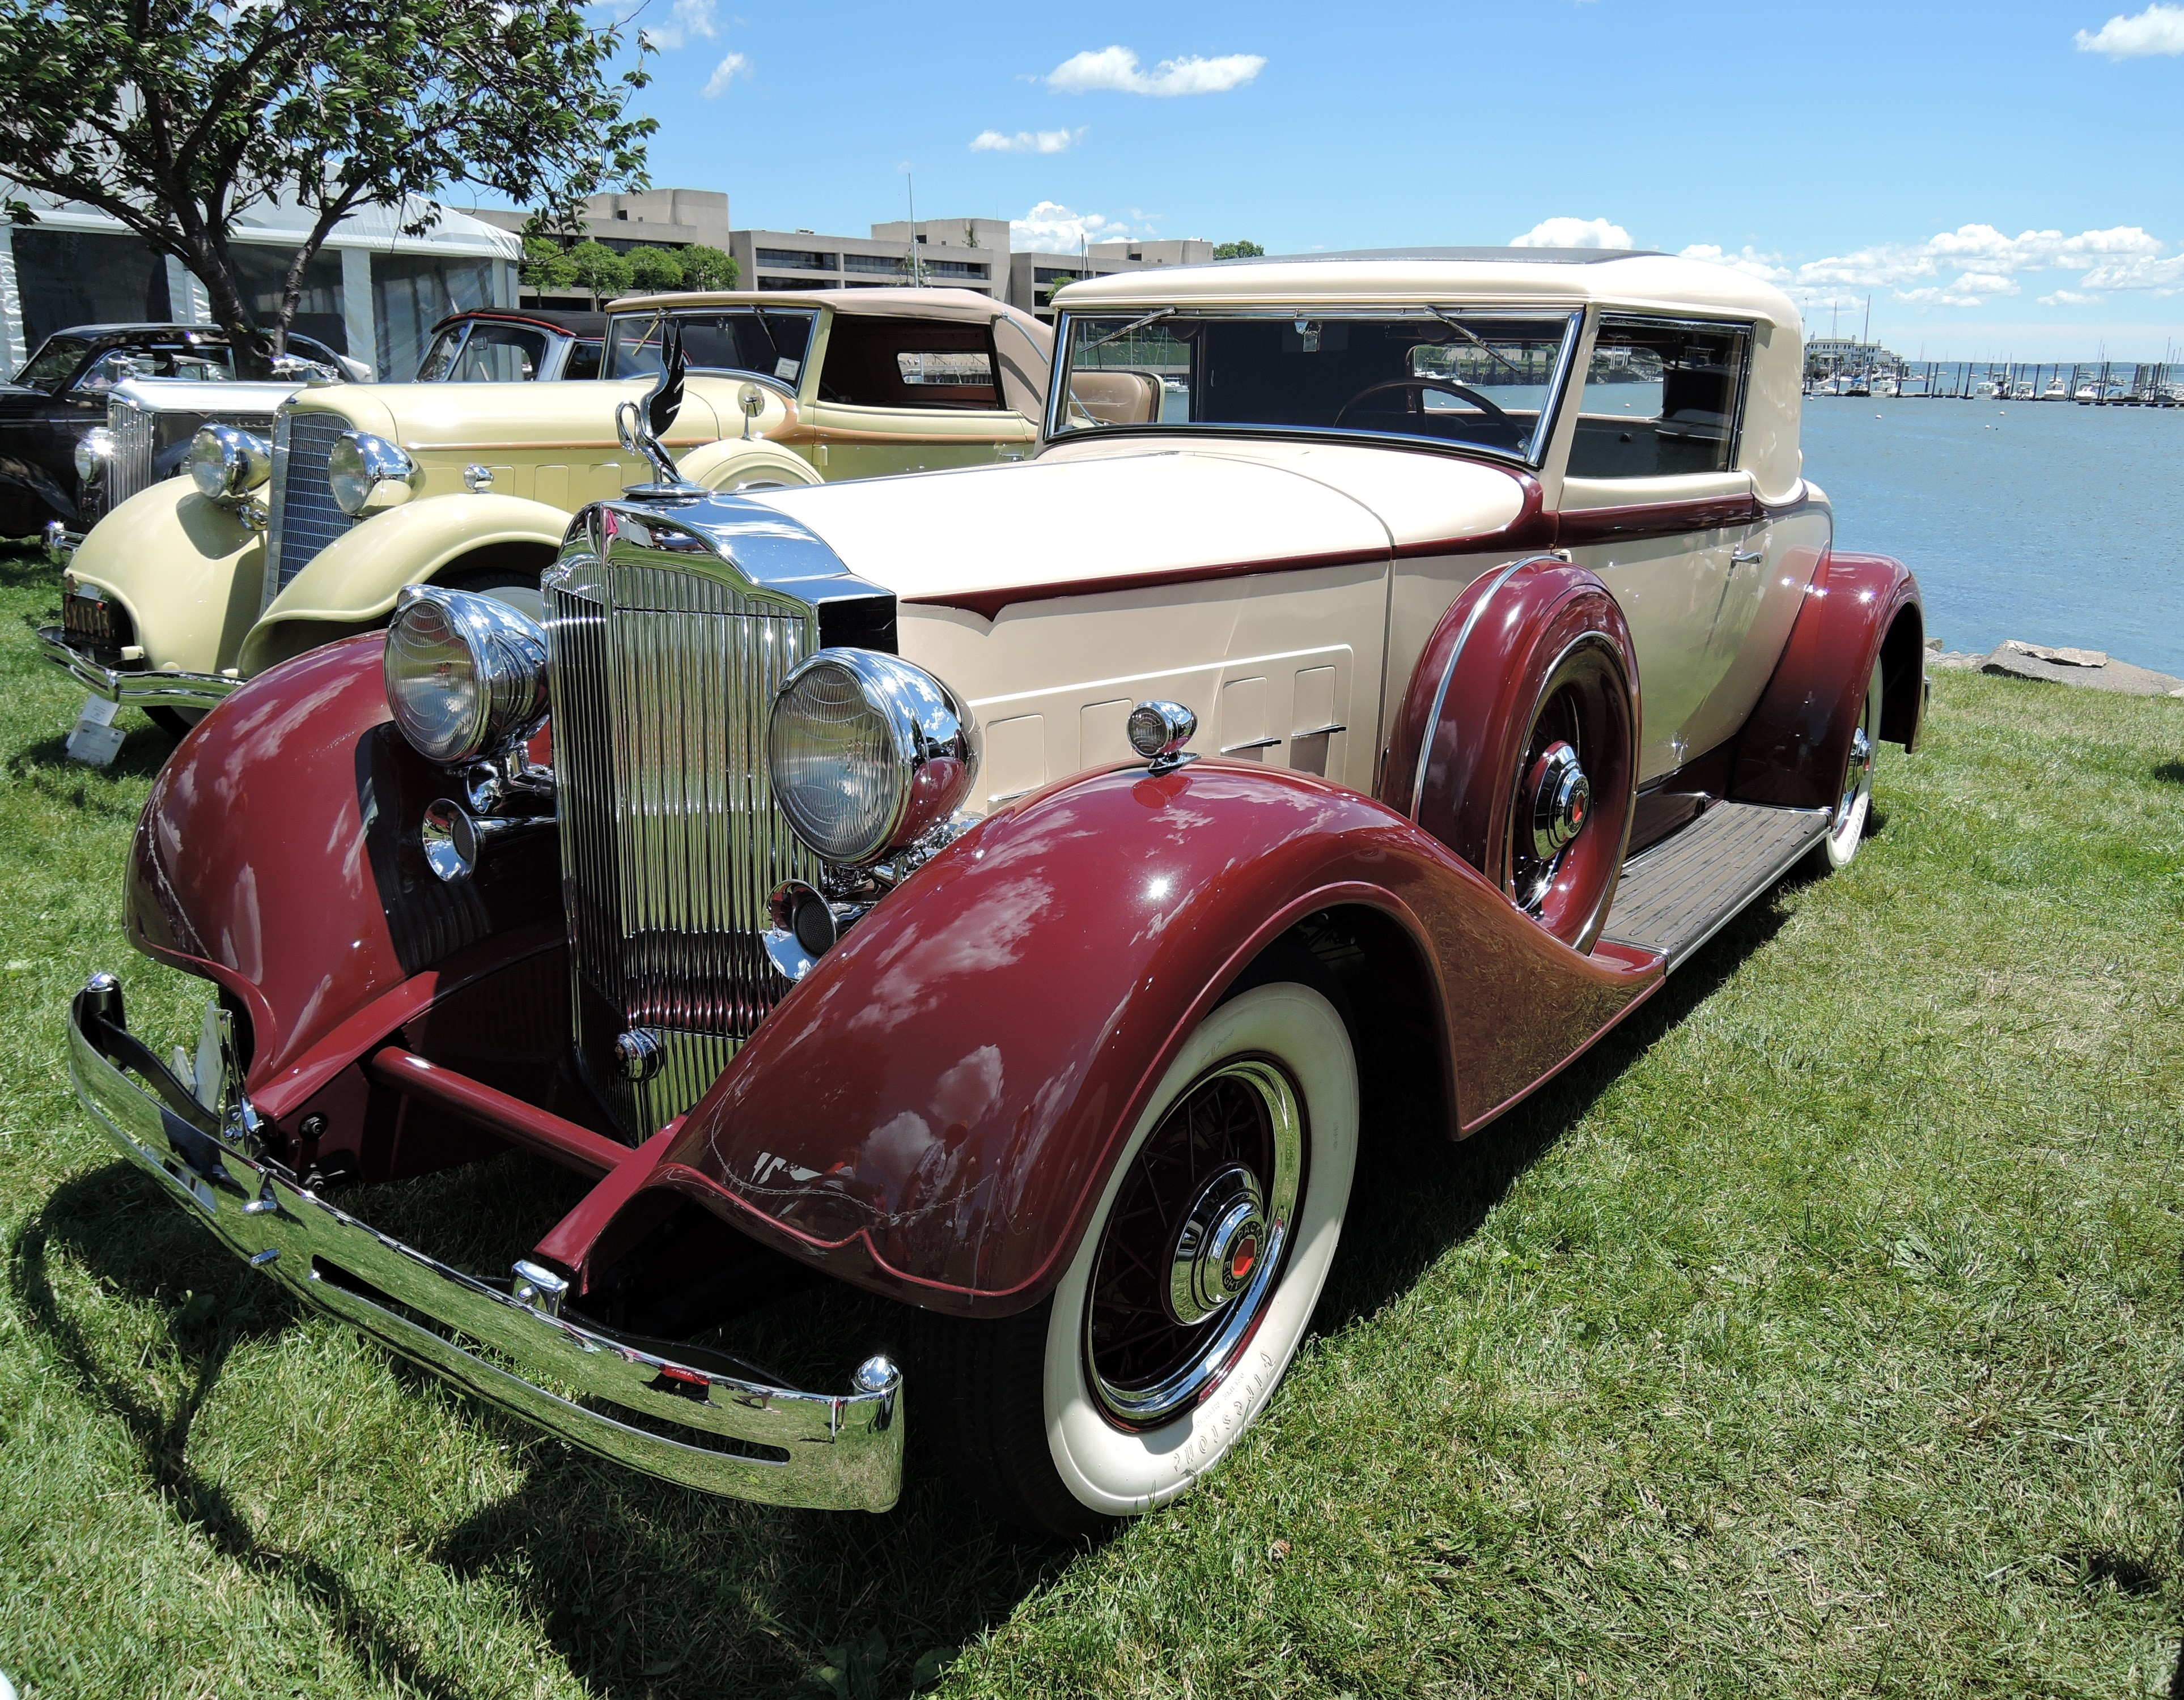 cream/red 1934 Packard 1101 - Greenwich Concours d'Elegance 2017